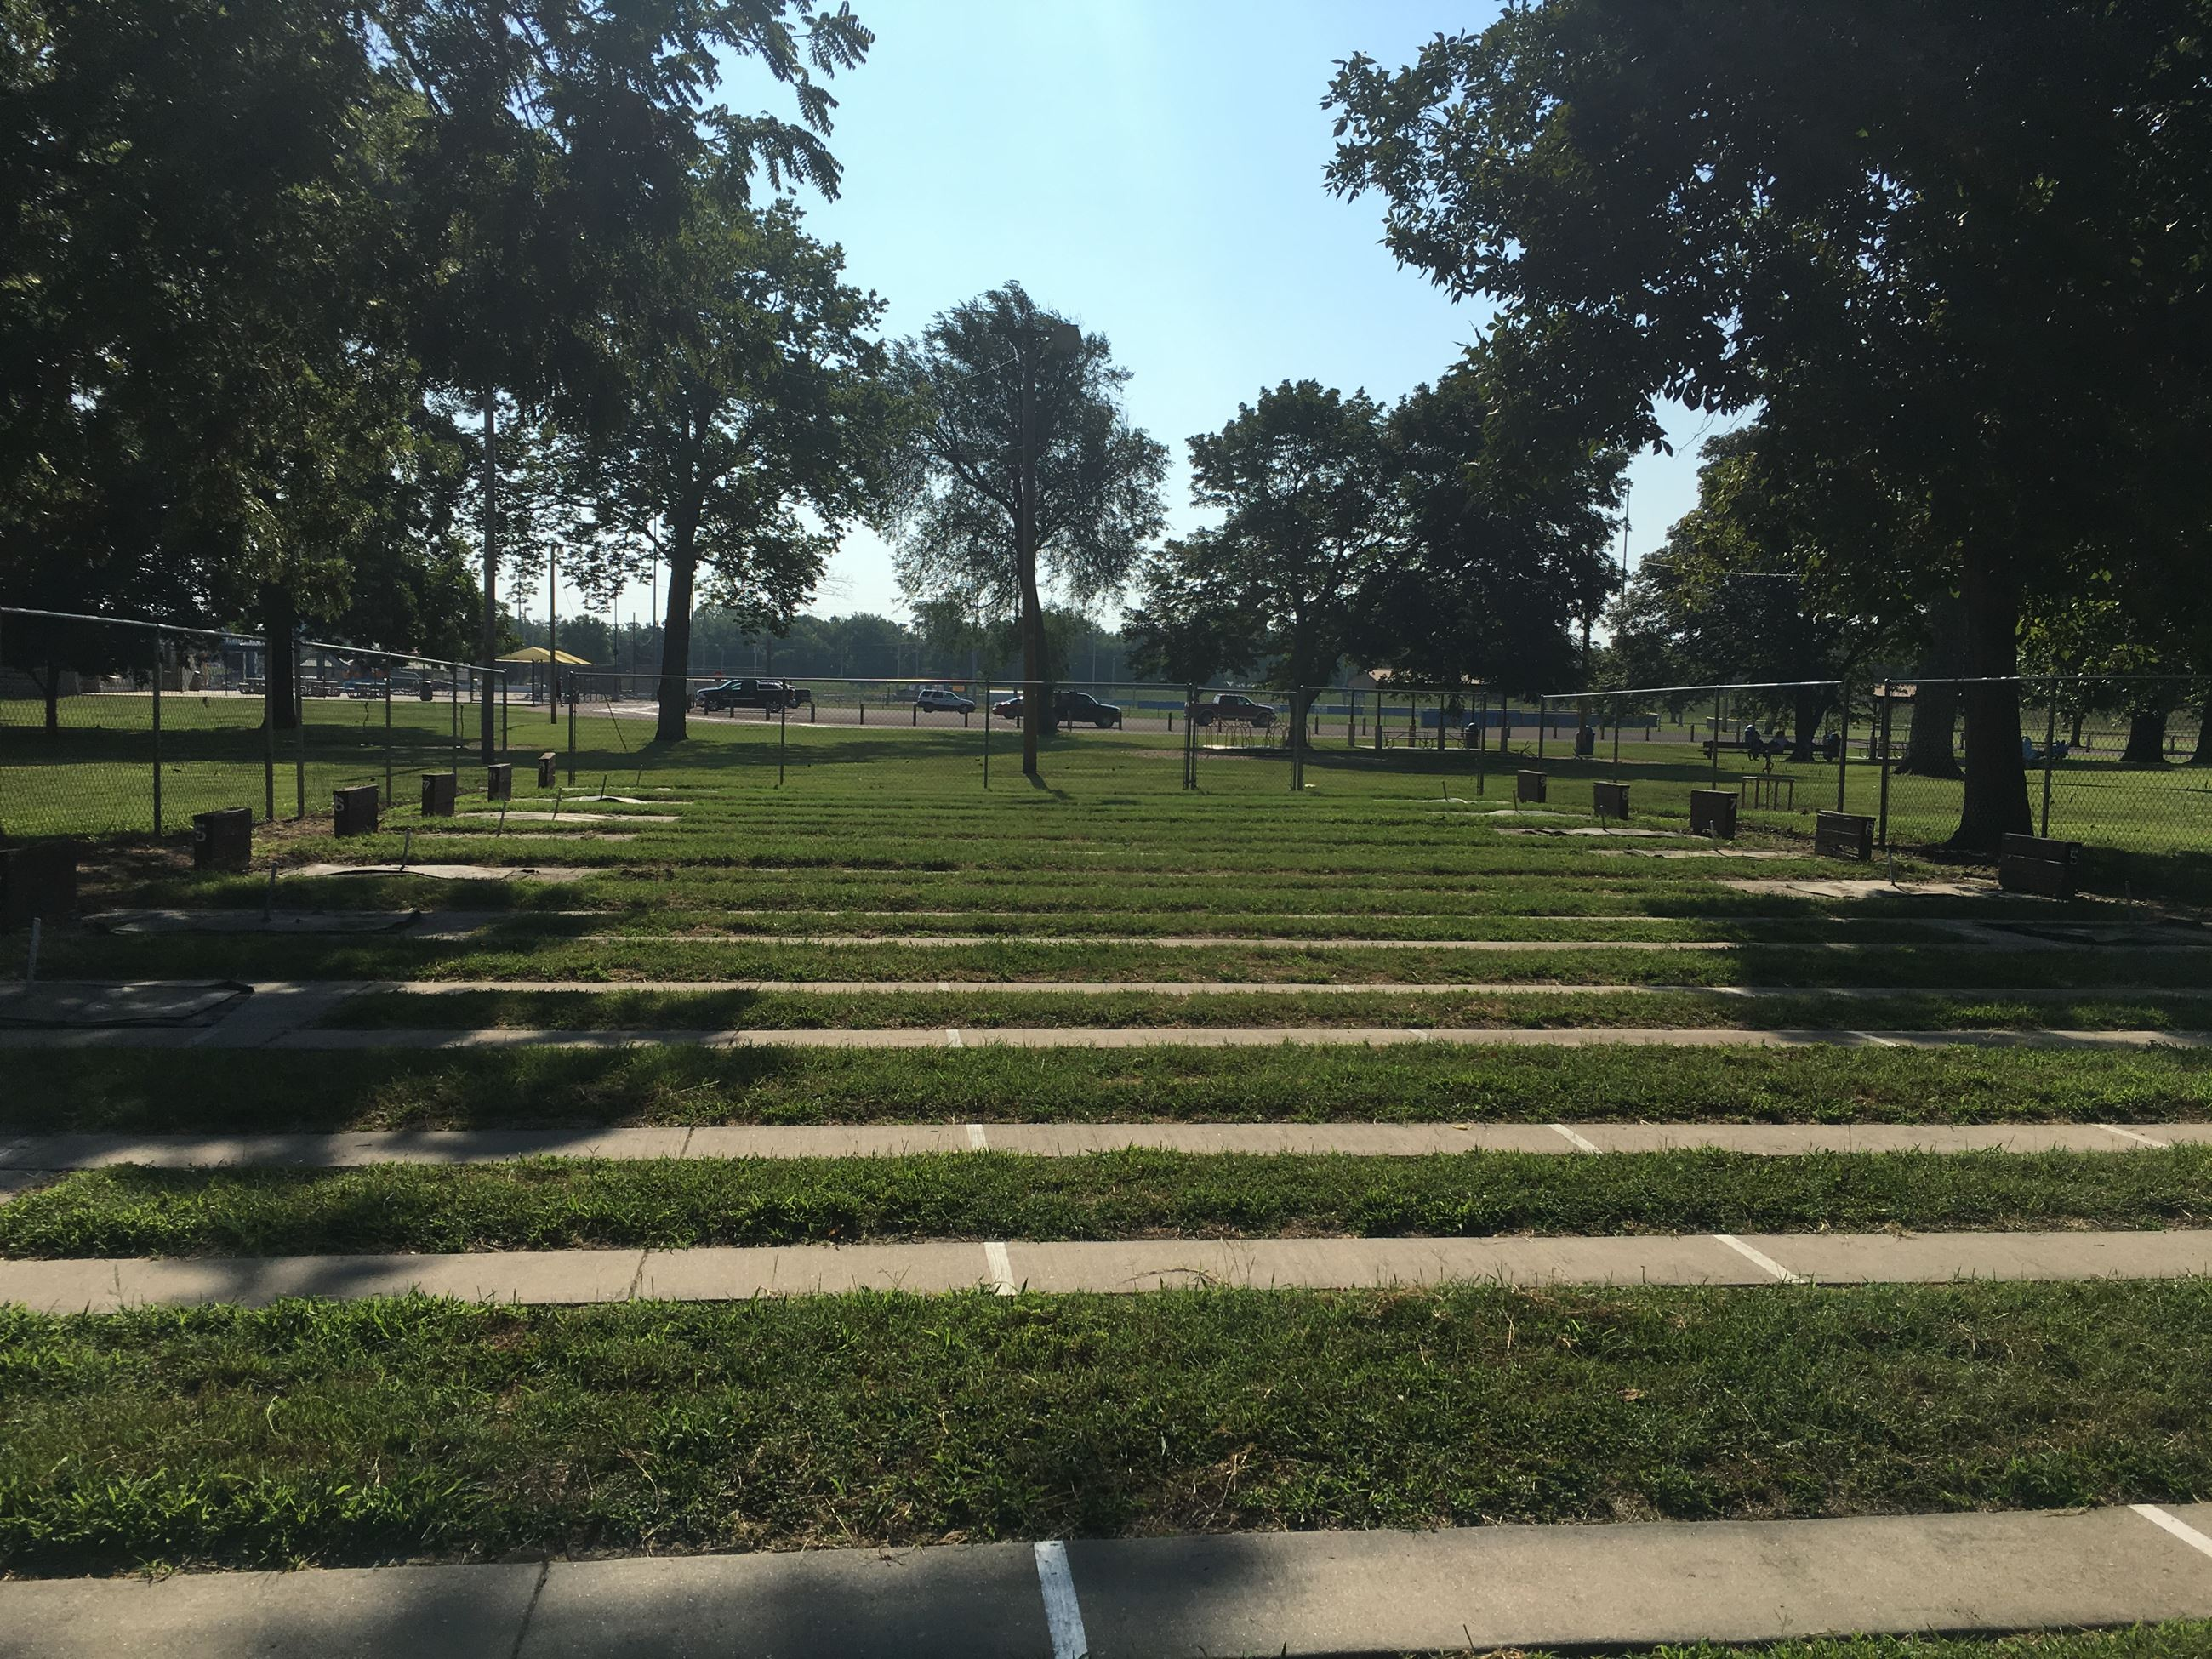 Horseshoe Pits Located at Riverside Park